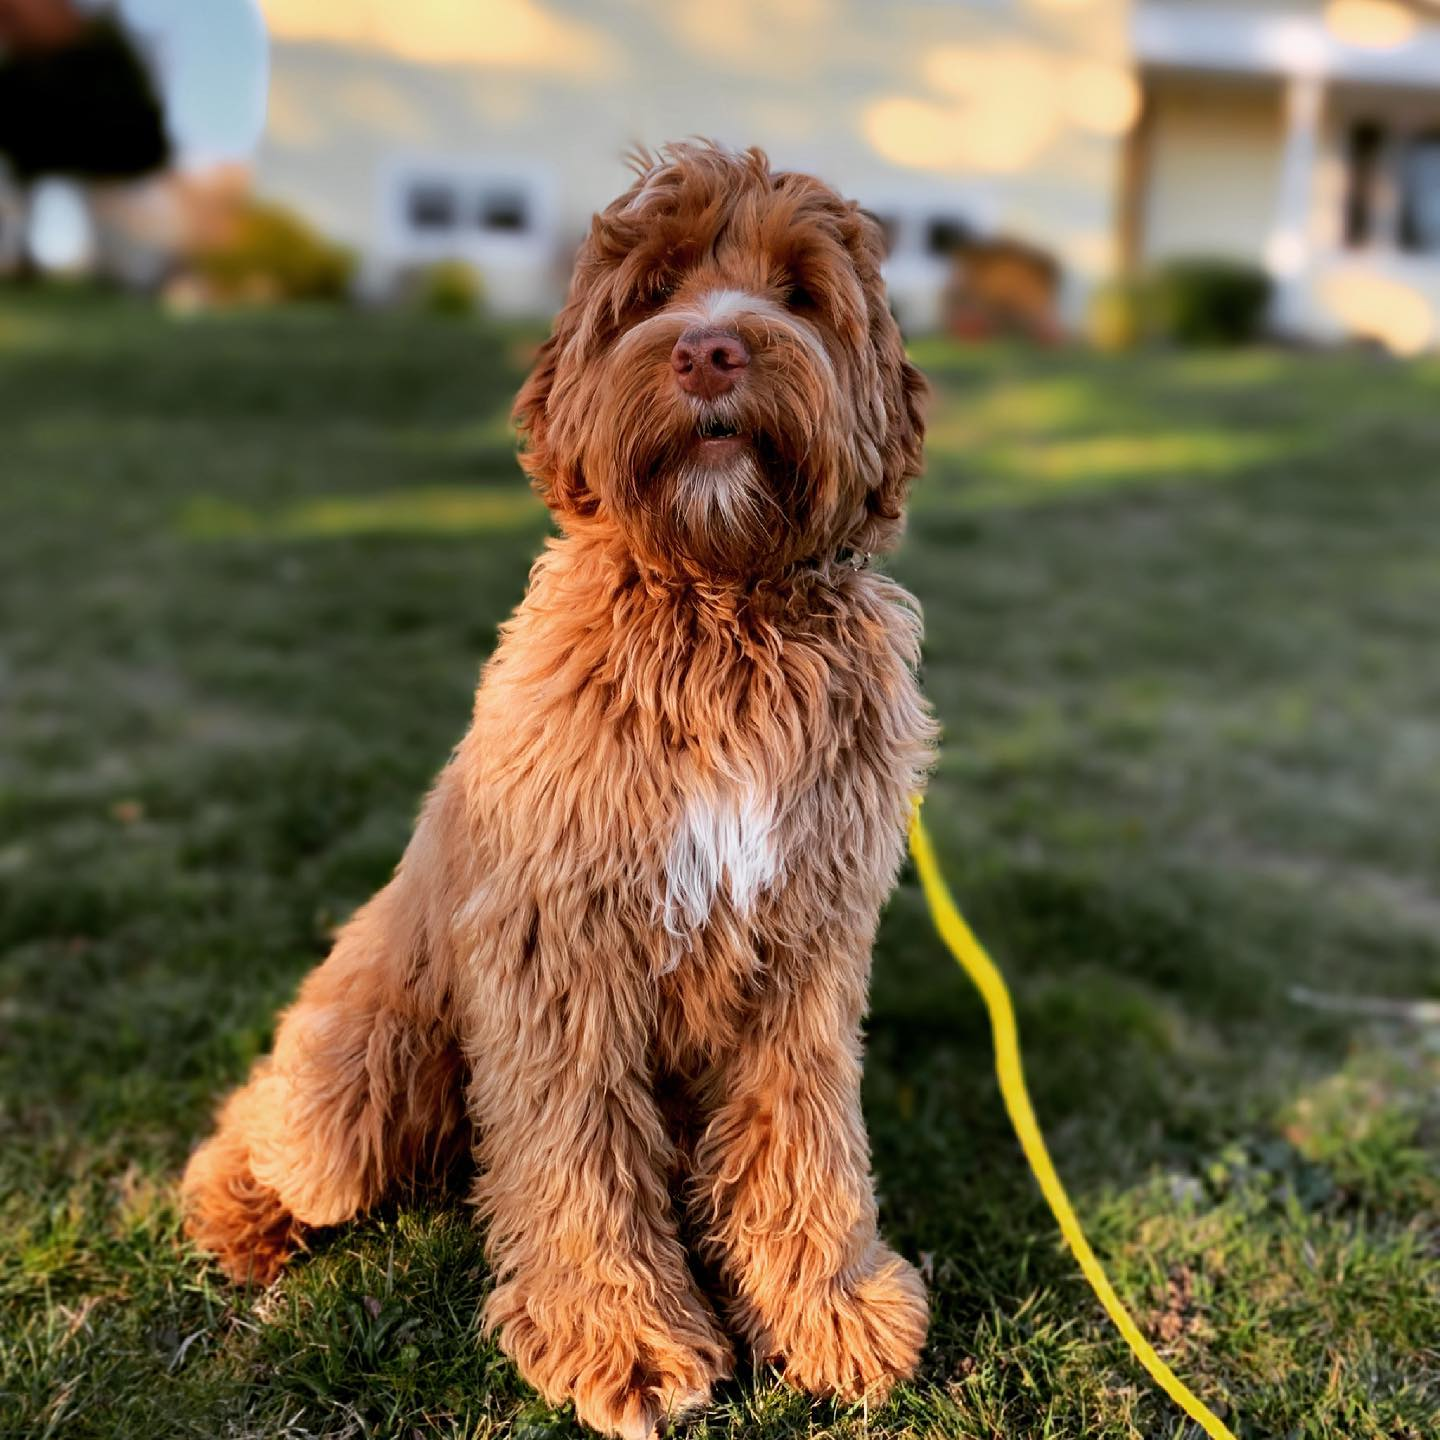 This dude. He keeps getting more cute the older he gets. #ragamuffin #looksbiggerthanheis #labradoodle #australianlabradoodle #sunvalleylabradoodles #puppy #yyj #dogsofinstagram #dogsofig #rustydoodle